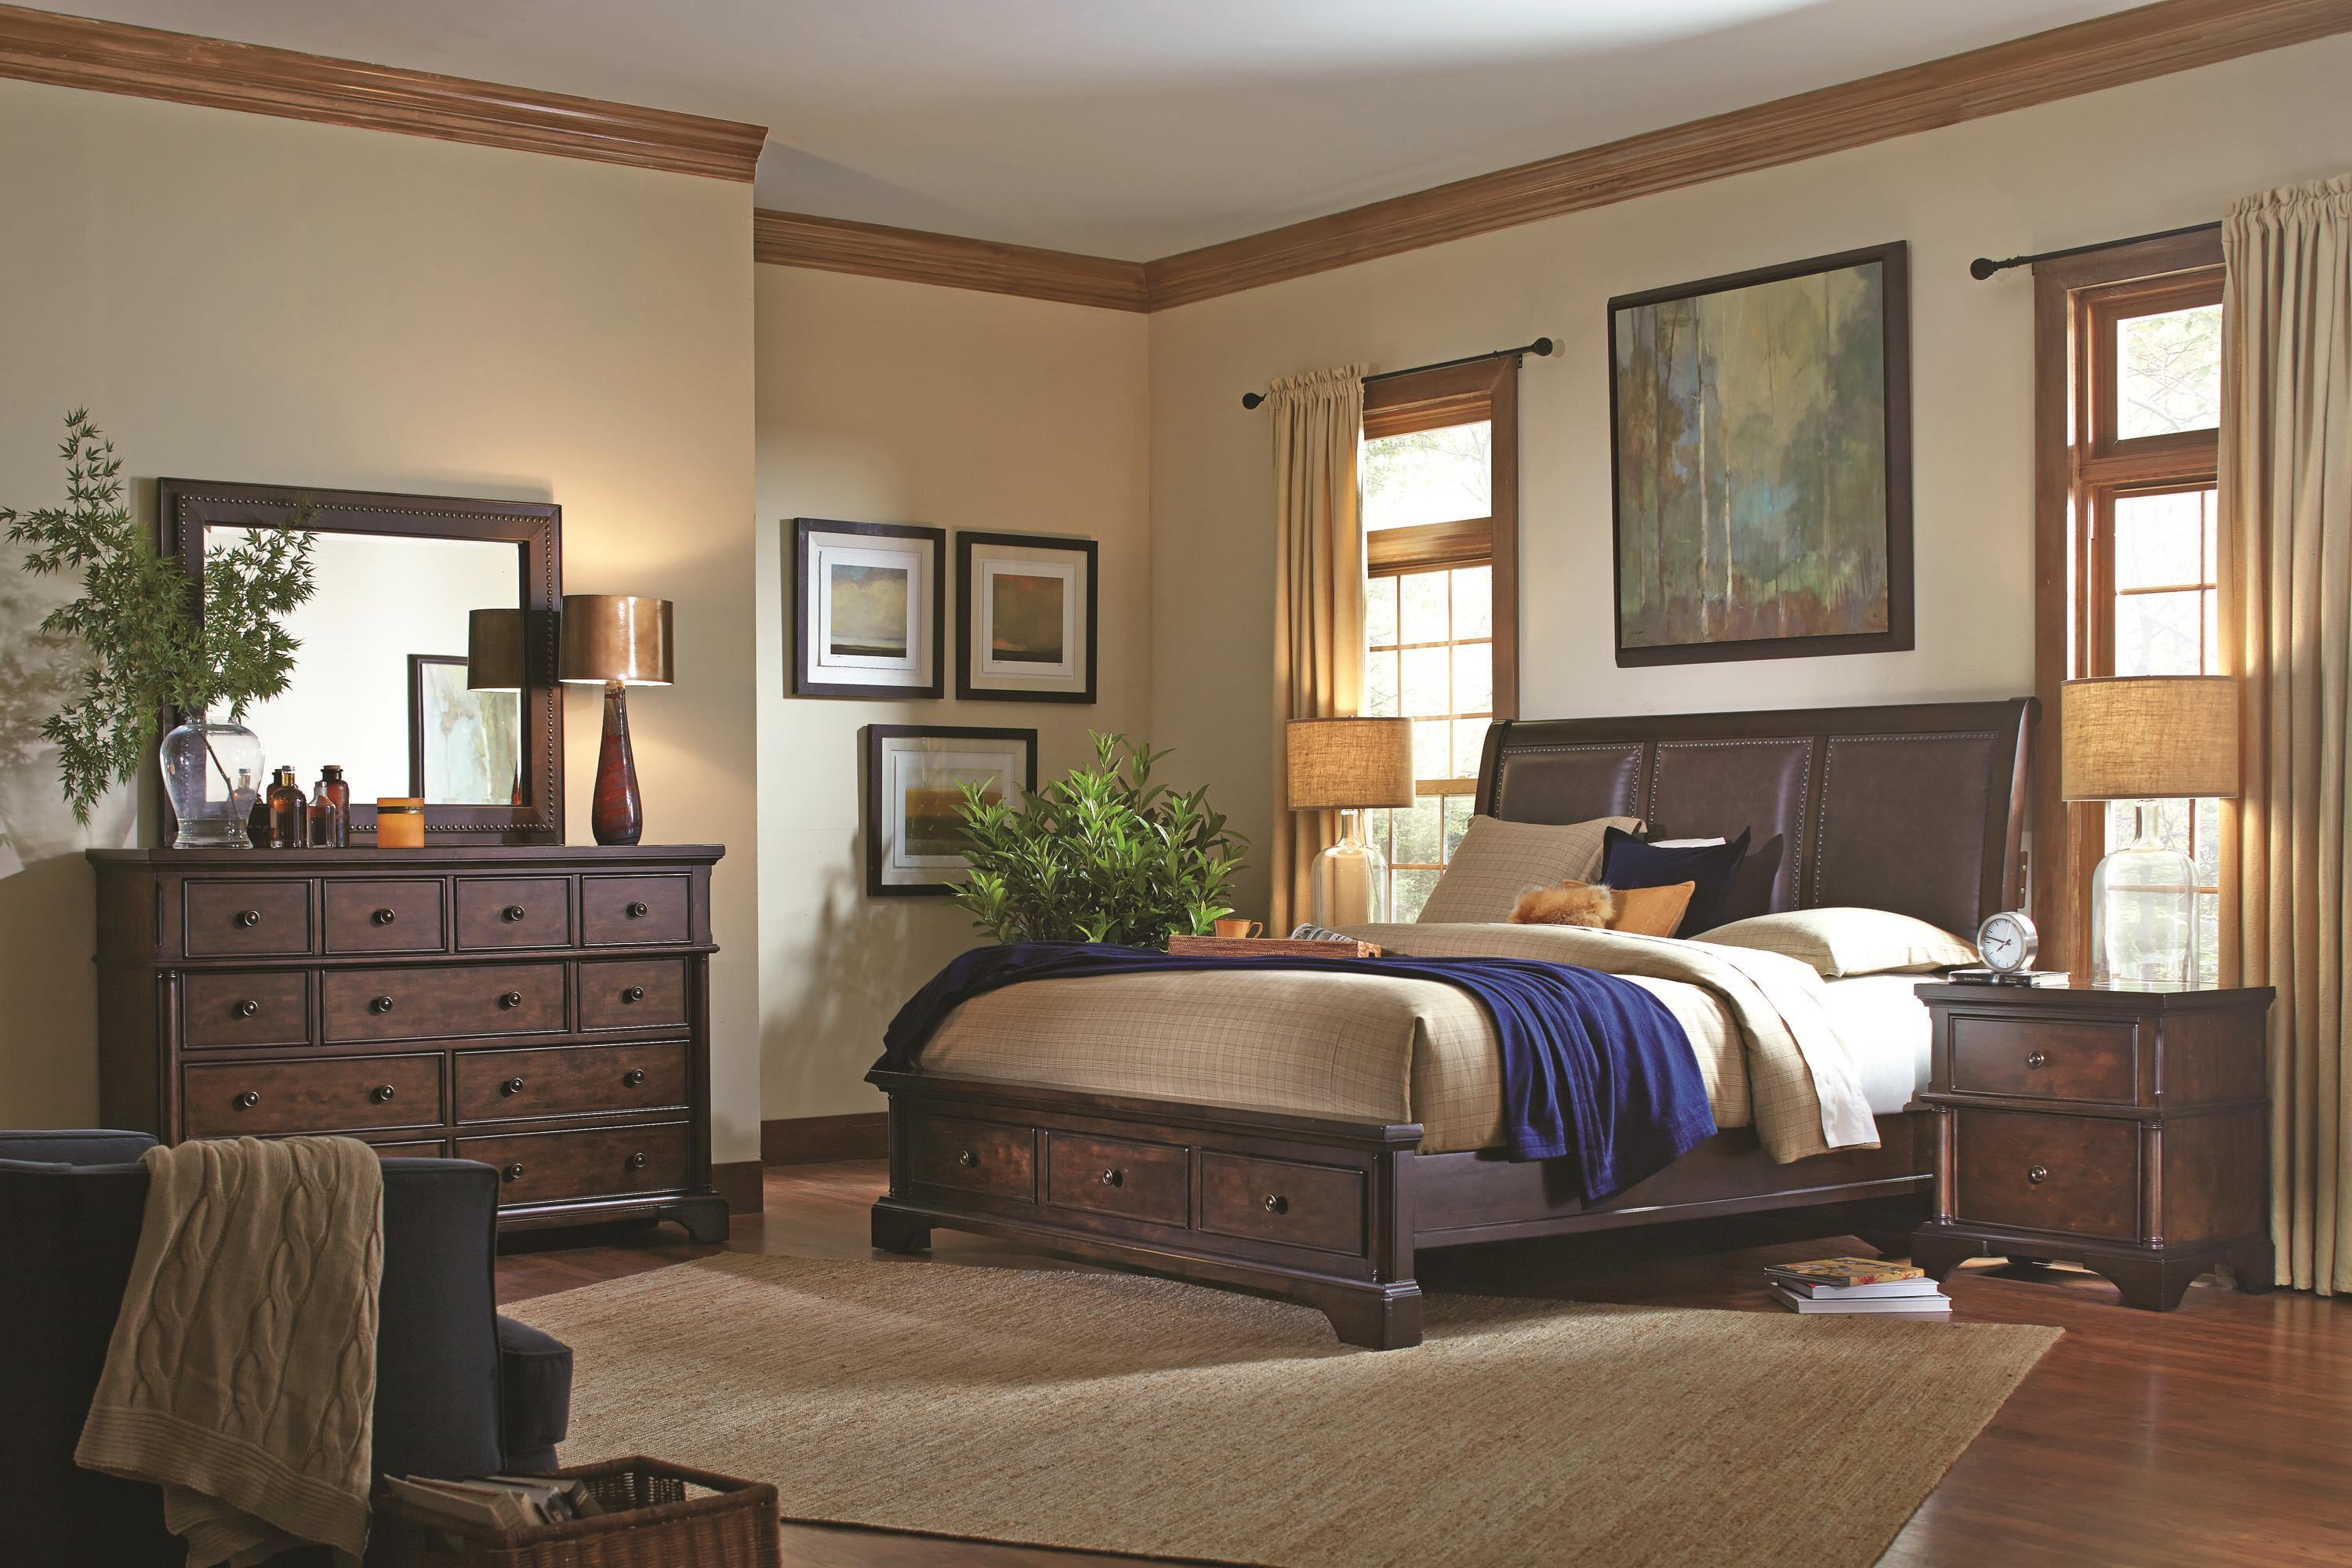 Aspenhome Bancroft Queen Bedroom Group - Item Number: I08 Q Bedroom Group 4